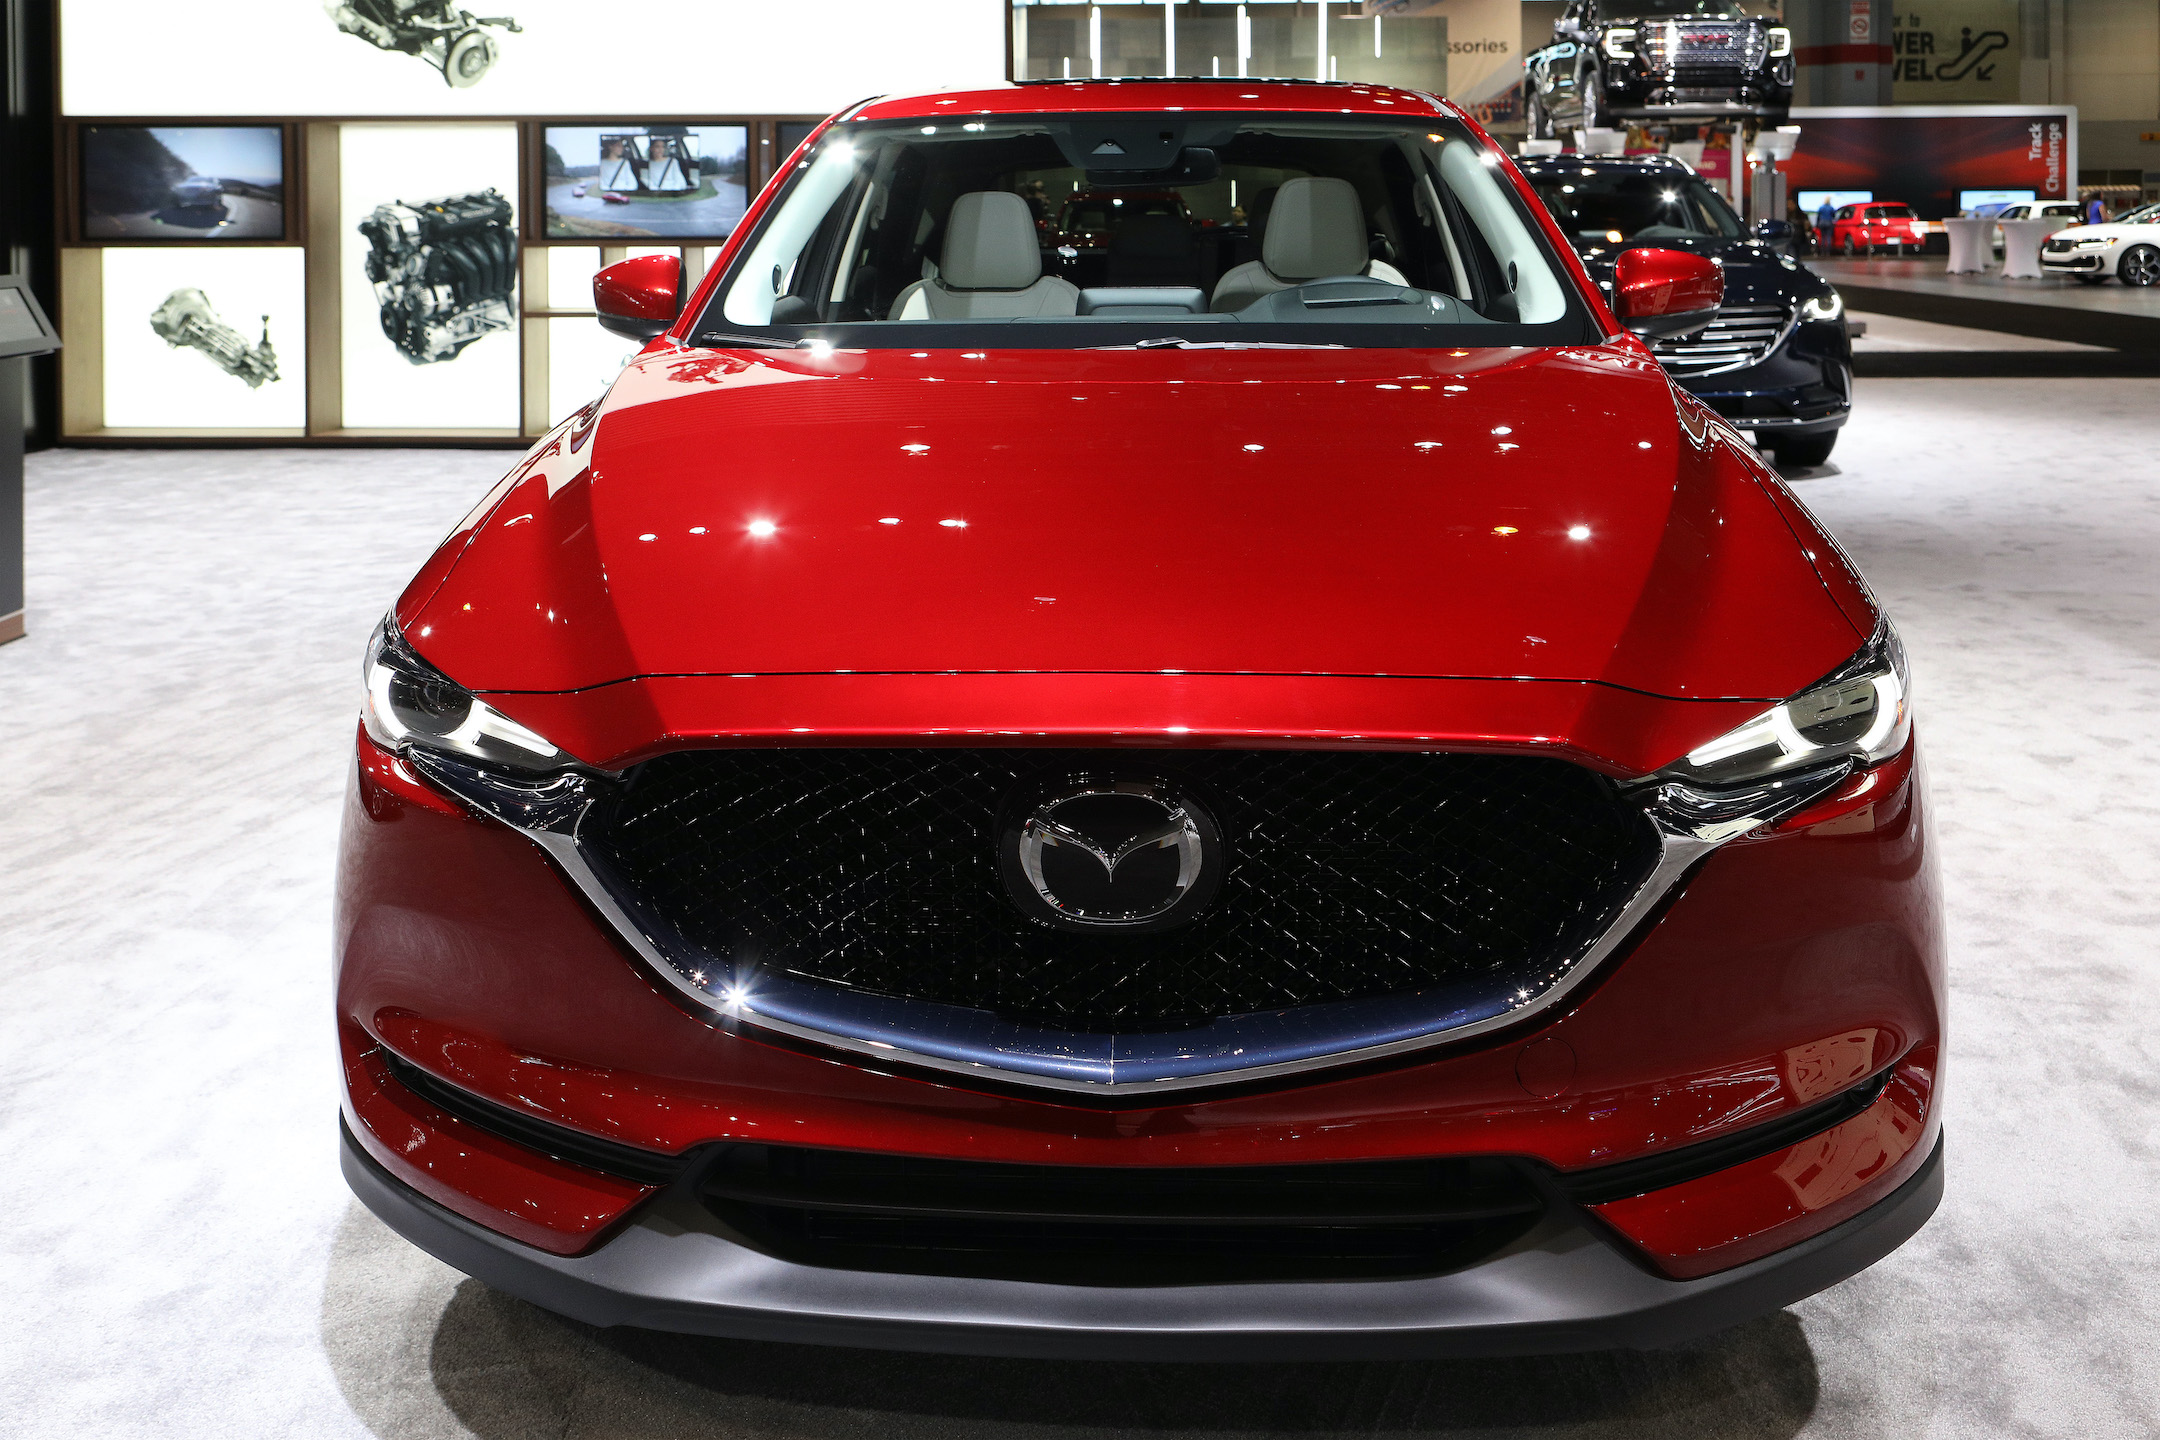 2021 mazda cx-5 vs. cx-9 do you really need the extra space?